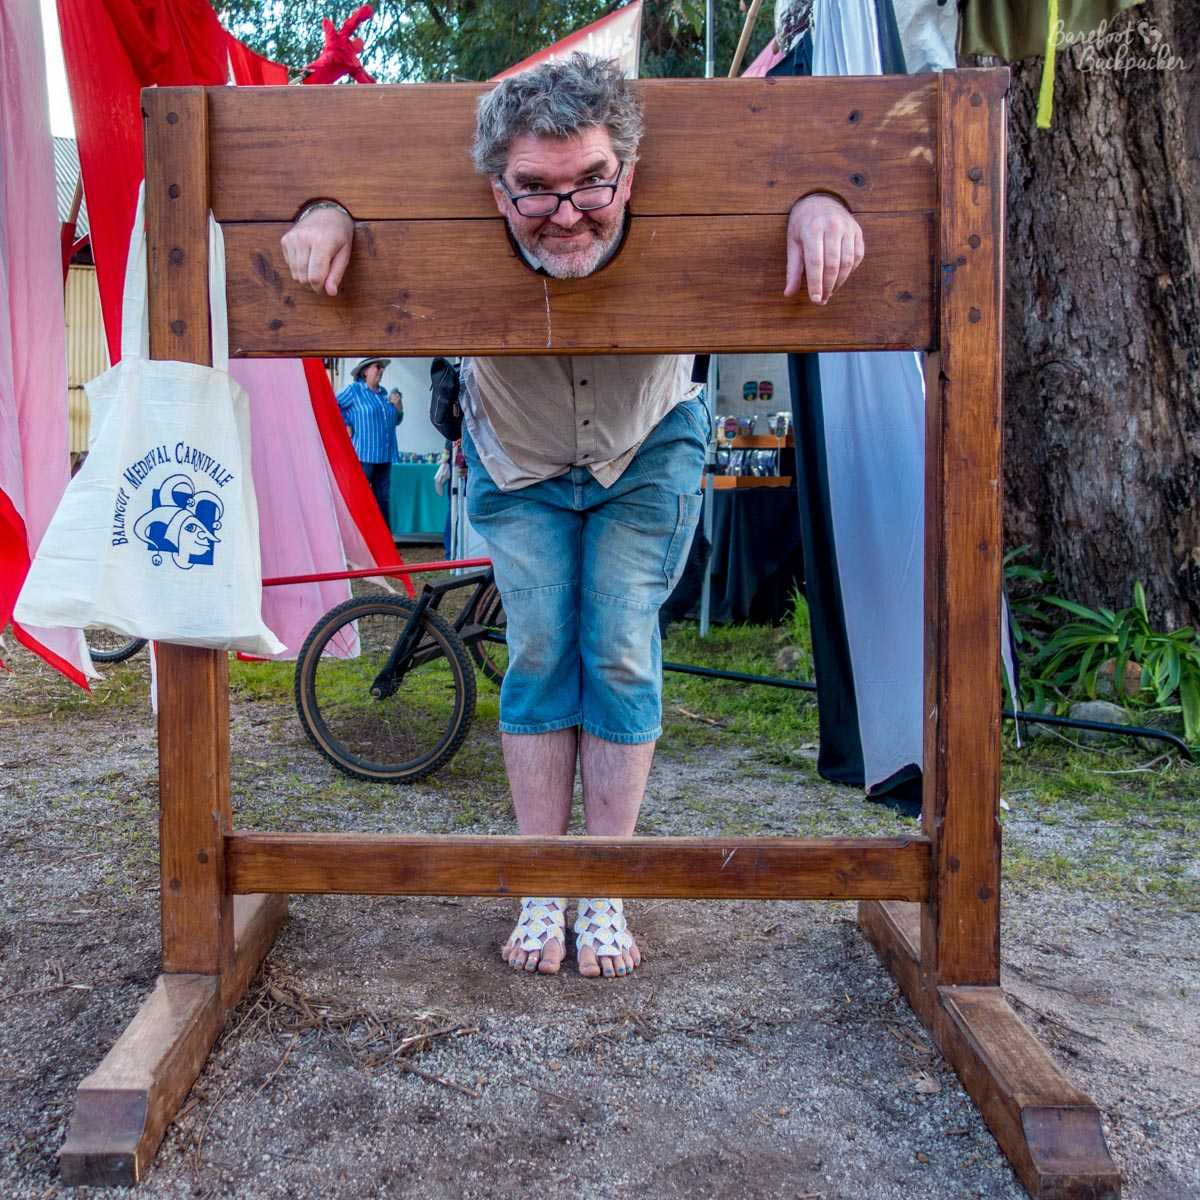 The Barefoot Backpacker locked in a pillory, Mediaeval Carnivale, Balingup